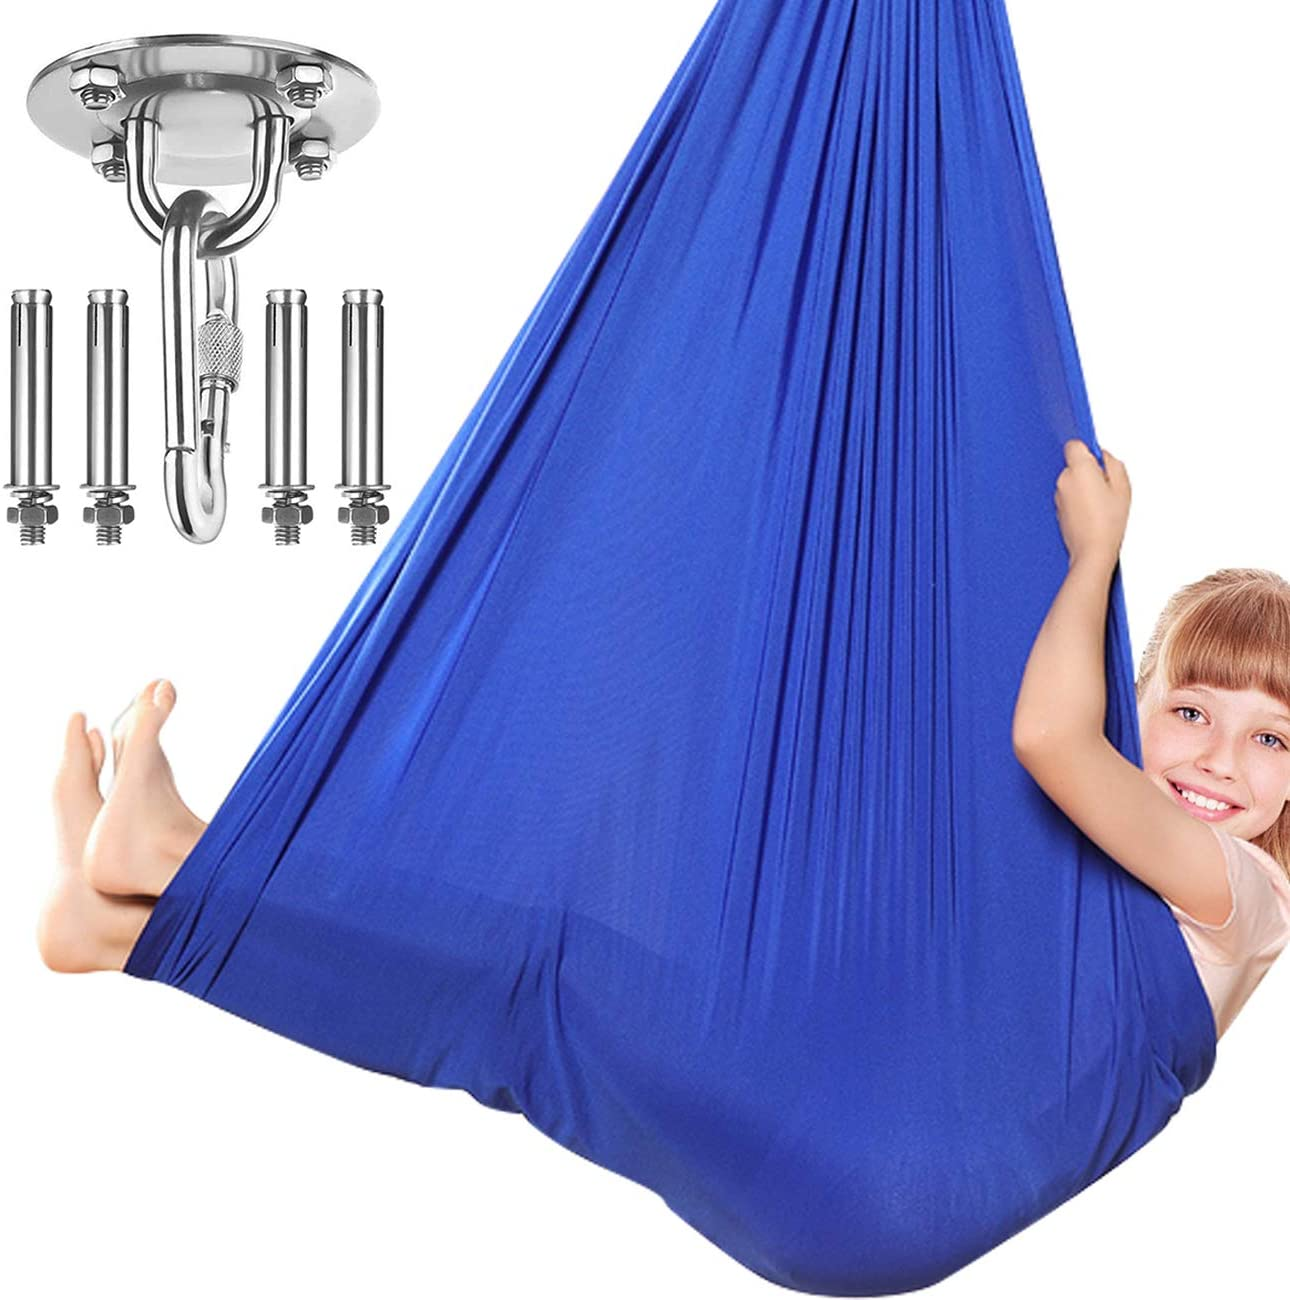 Dadoudou Sensory Swing Indoor, Swing Hammock Chair for Kids with Special Needs, Autism, ADHD, SPD, Aspergers, Sensory Integration, Snuggle Cuddle Pod Therapy Swing with Hardware Included Blue